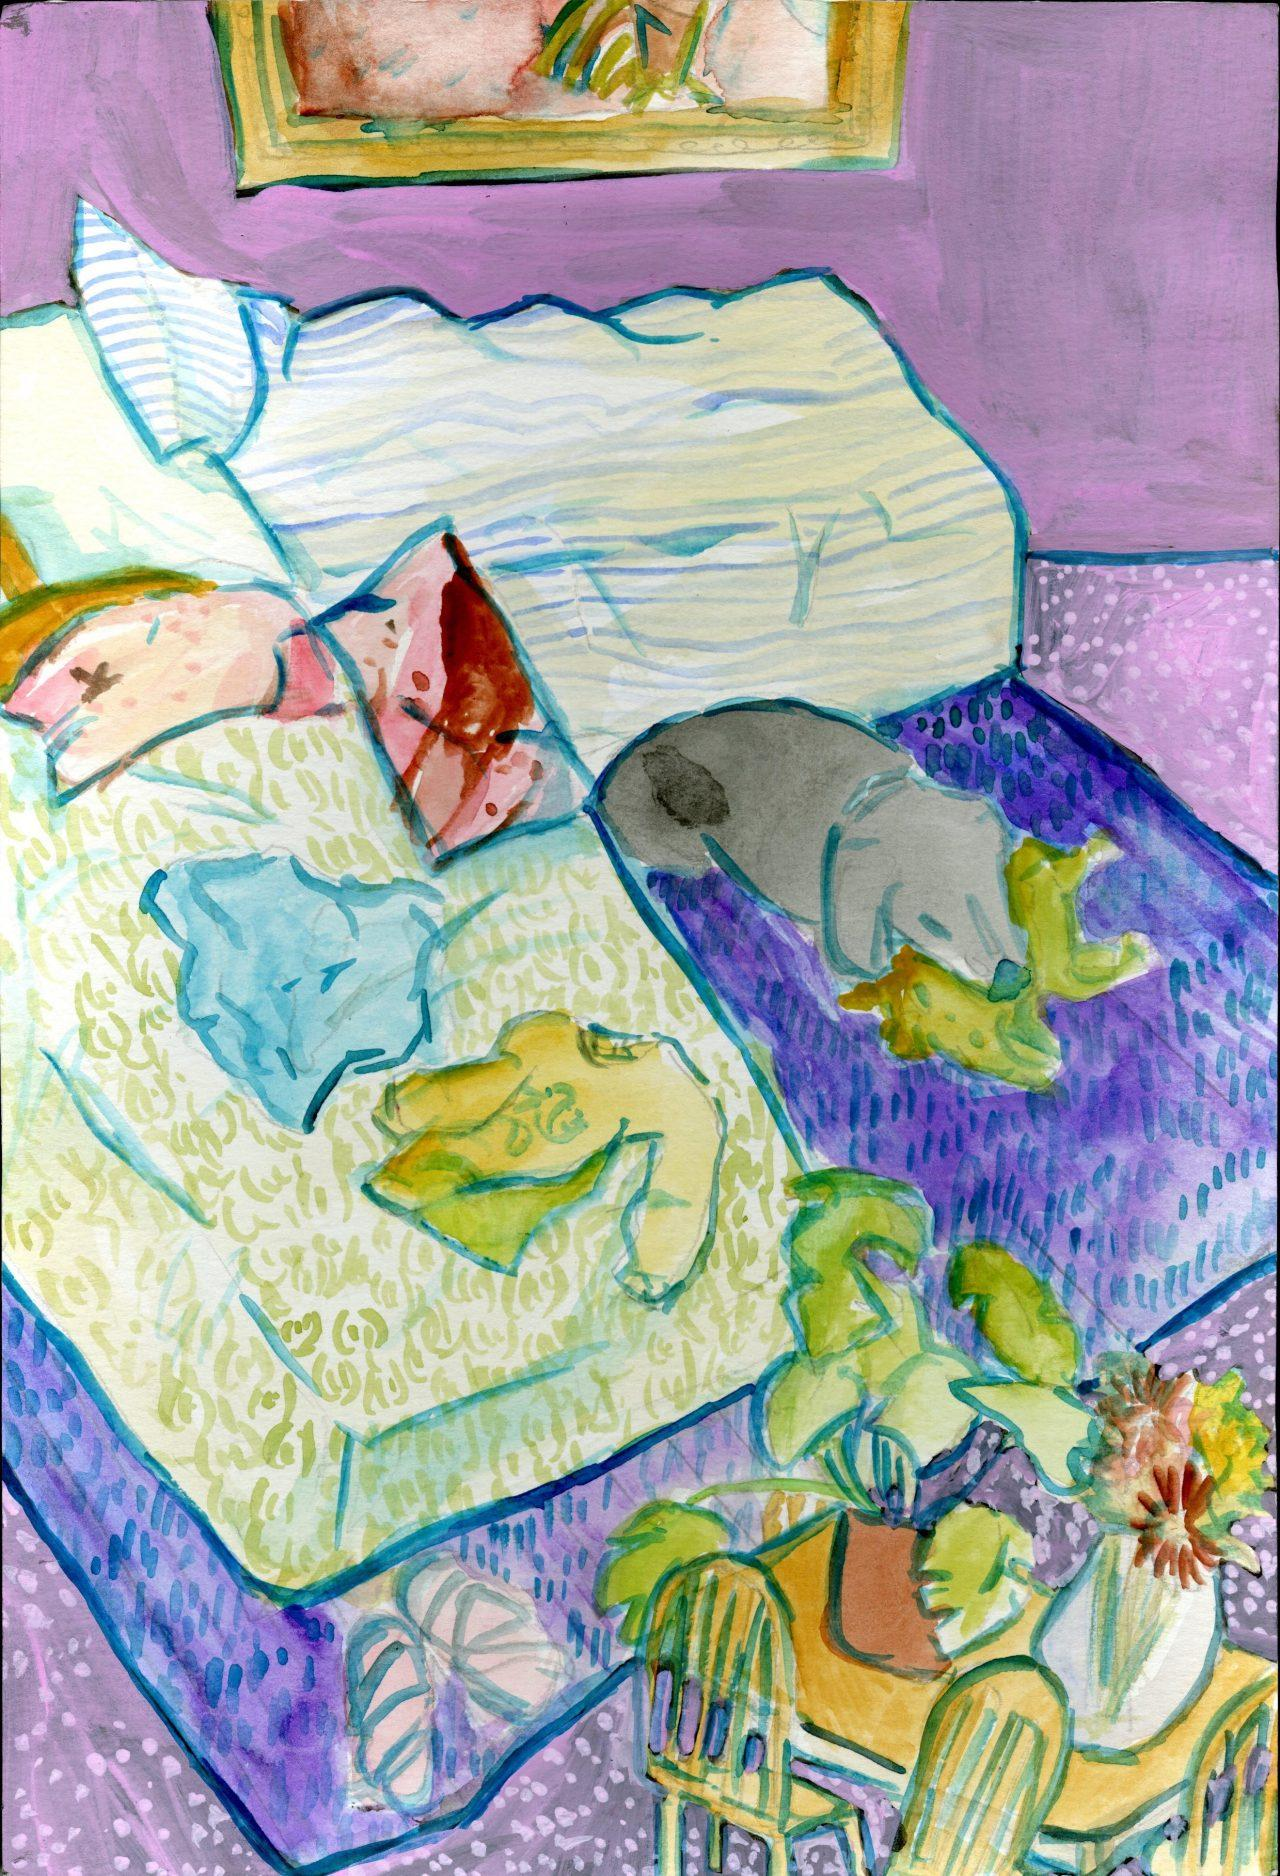 %22Bedroom+Blues%22+by+Elyse+Andrews.+Watercolor+and+gouache+on+paper.+This+painting+will+not+appear+in+the+senior+show+but+very+directly+has+a+major+influence+on+Andrews%27+work%27s+direction.